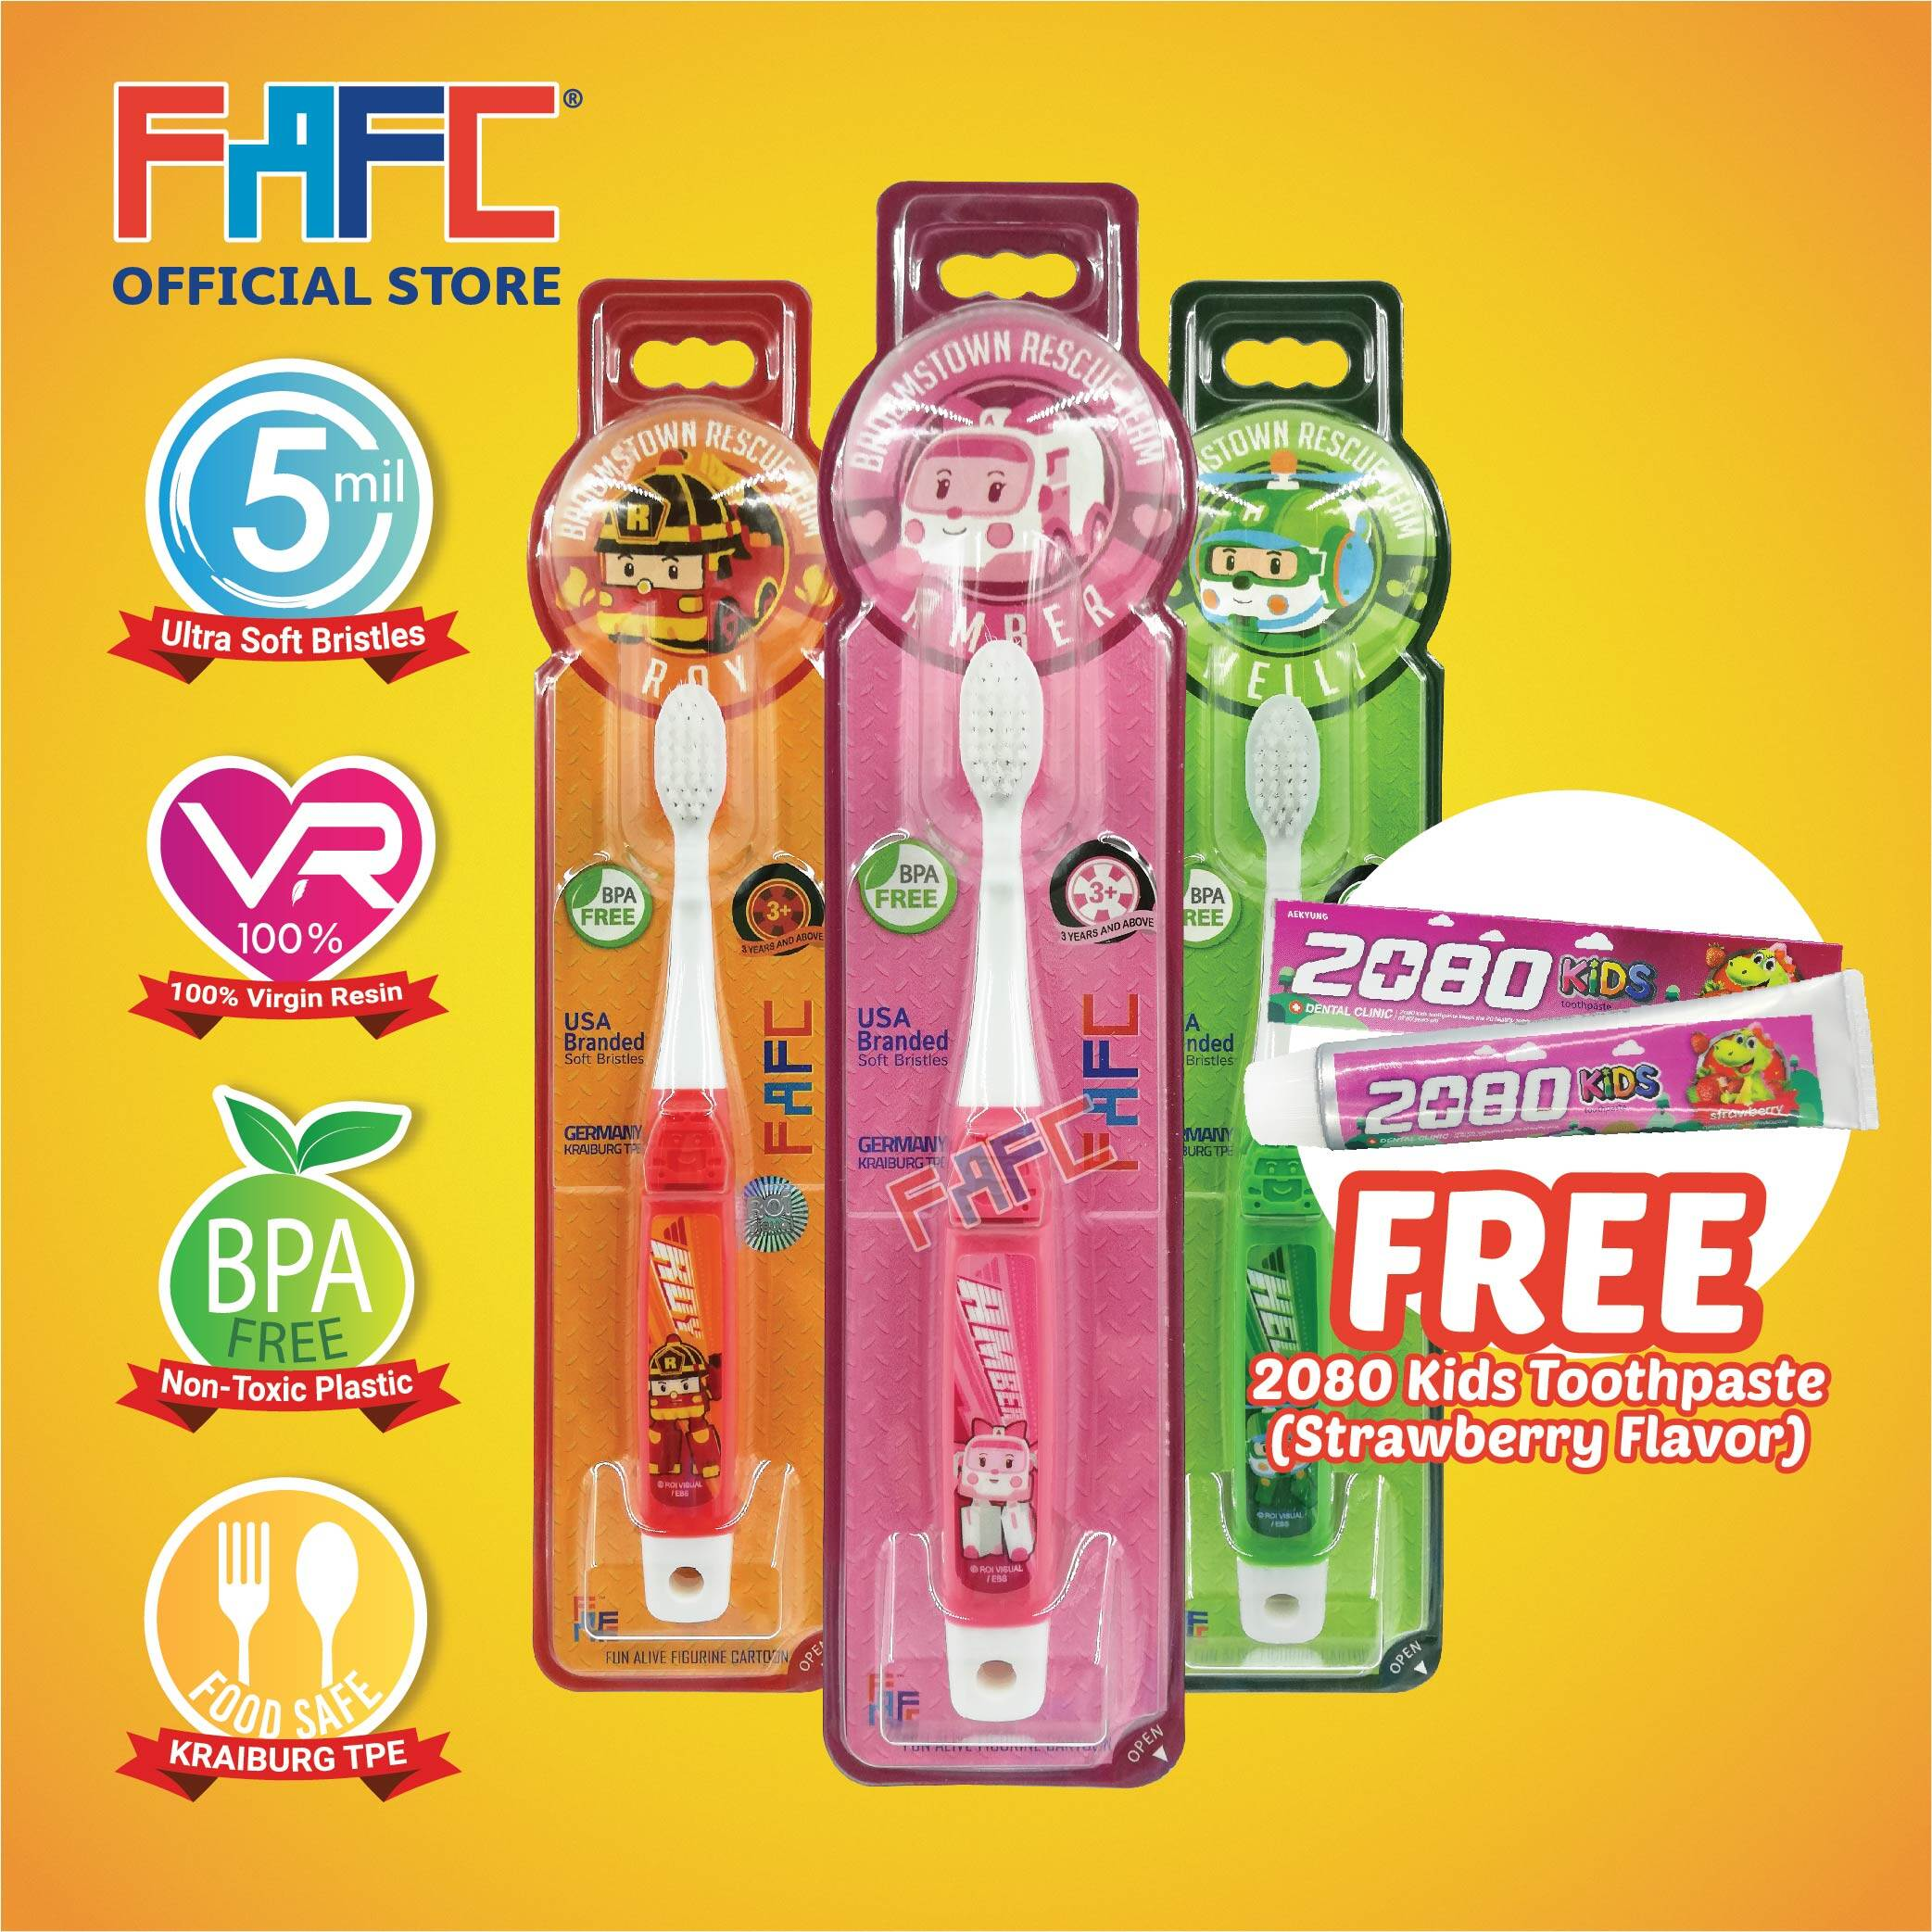 AMBER ROY HELLY - (3 Pcs) FAFC Robocar Poli Hook Kids Toothbrush FREE 2080 Kids Toothpaste (Strawberry Flavor)